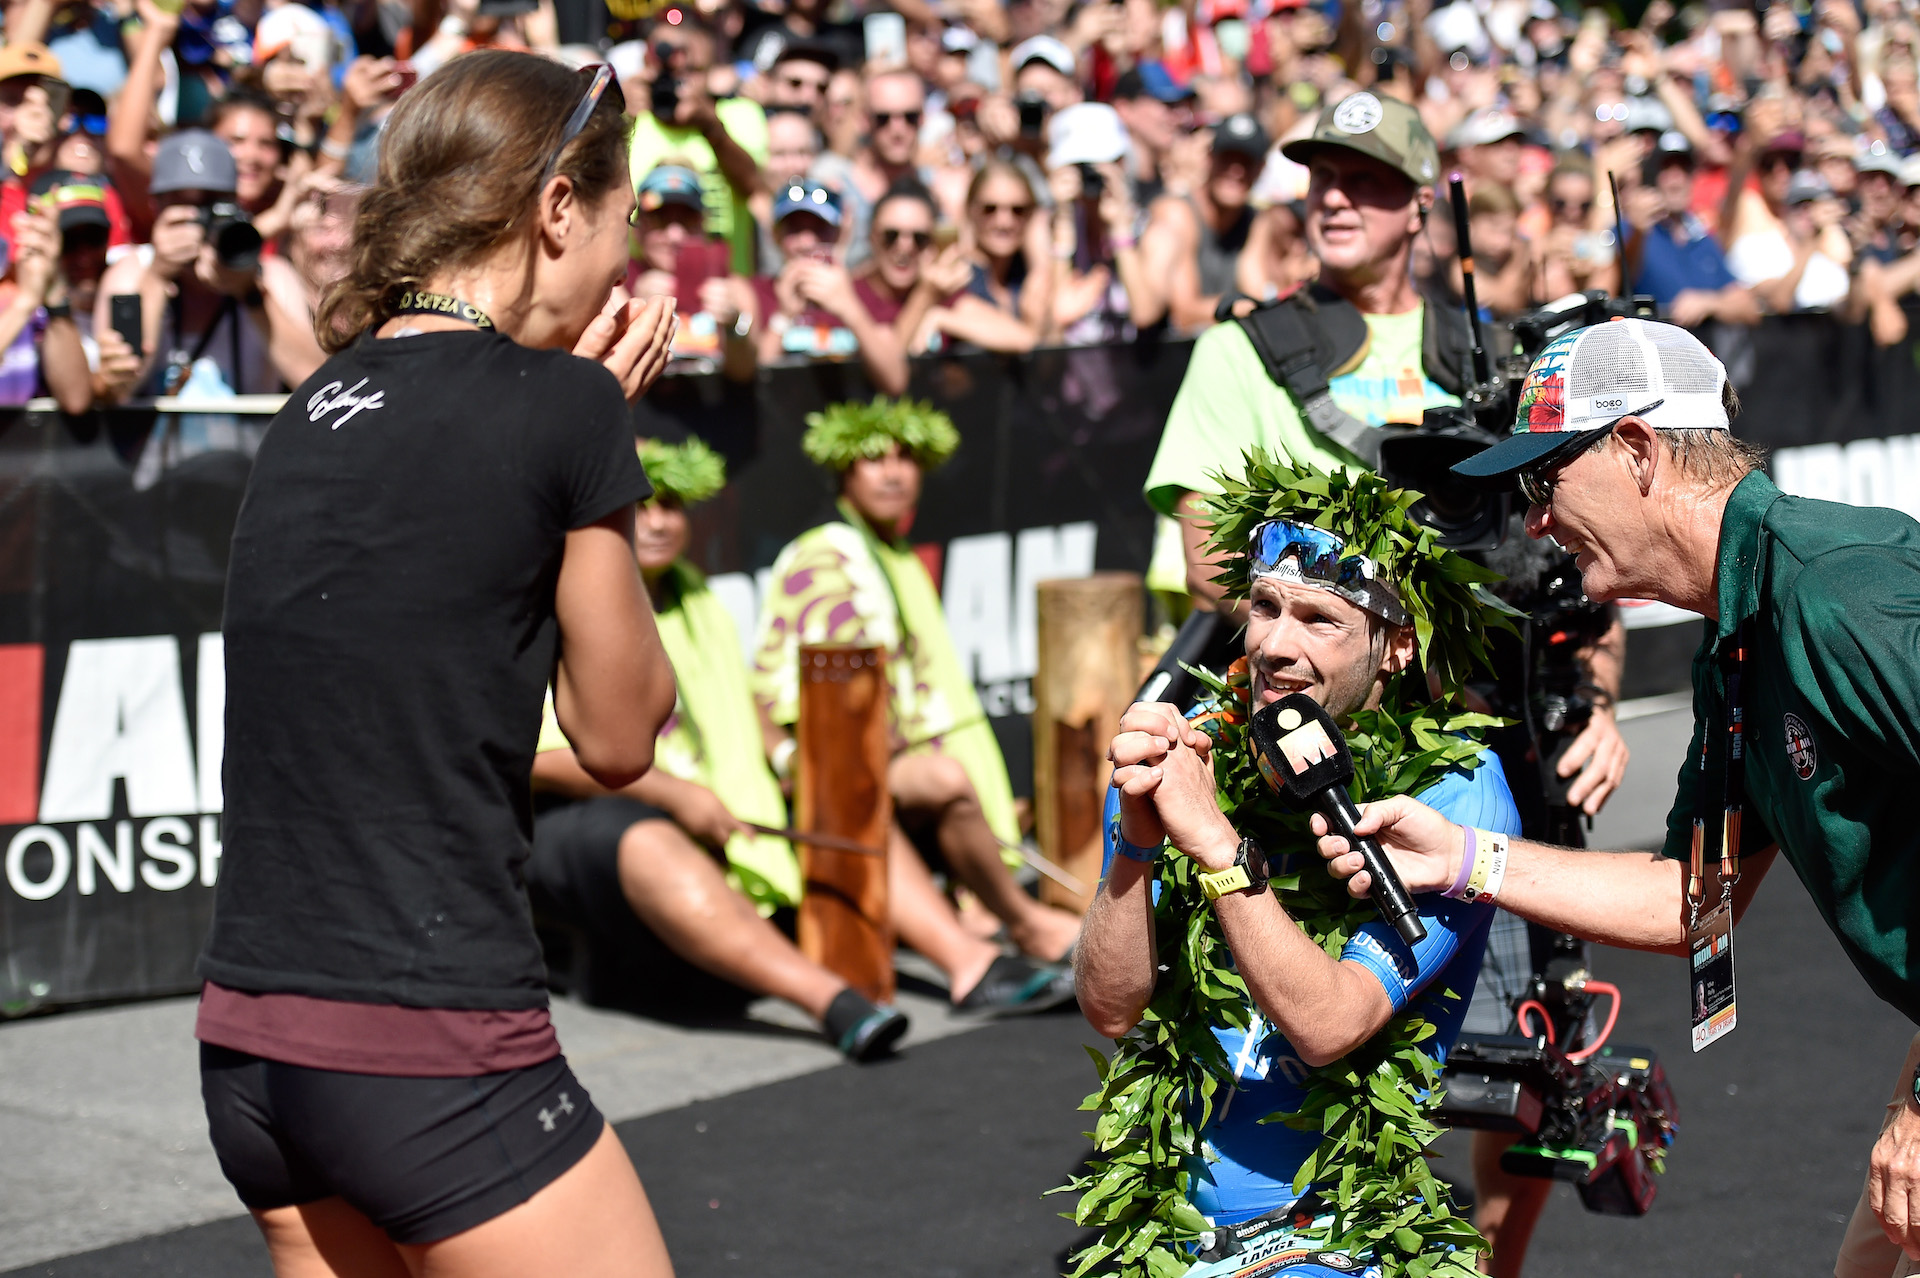 Patrick Lange proposes to his girlfriend Julia Hofmann after Lange sets a course record of 7:52:39 to win the IRONMAN World Championship(Photo by Nils Nilsen/Getty Images for IRONMAN)